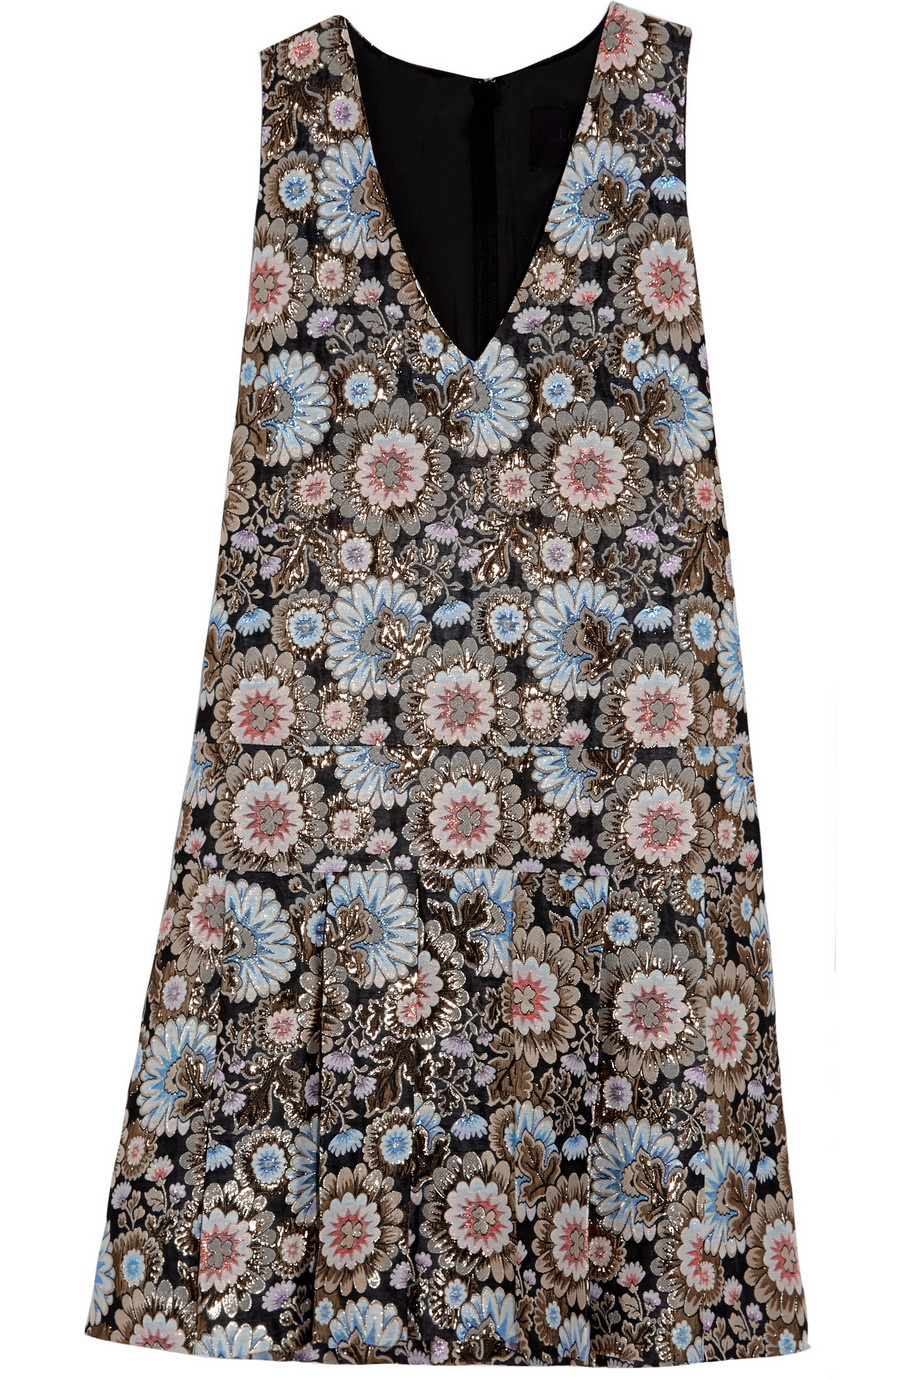 Collection Metallic Floral Jacquard Dress Black - style: shift; neckline: low v-neck; sleeve style: standard vest straps/shoulder straps; predominant colour: pale blue; secondary colour: taupe; occasions: casual, creative work; length: just above the knee; fit: soft a-line; fibres: nylon - mix; sleeve length: sleeveless; pattern type: fabric; pattern size: big & busy; pattern: patterned/print; texture group: brocade/jacquard; multicoloured: multicoloured; season: a/w 2015